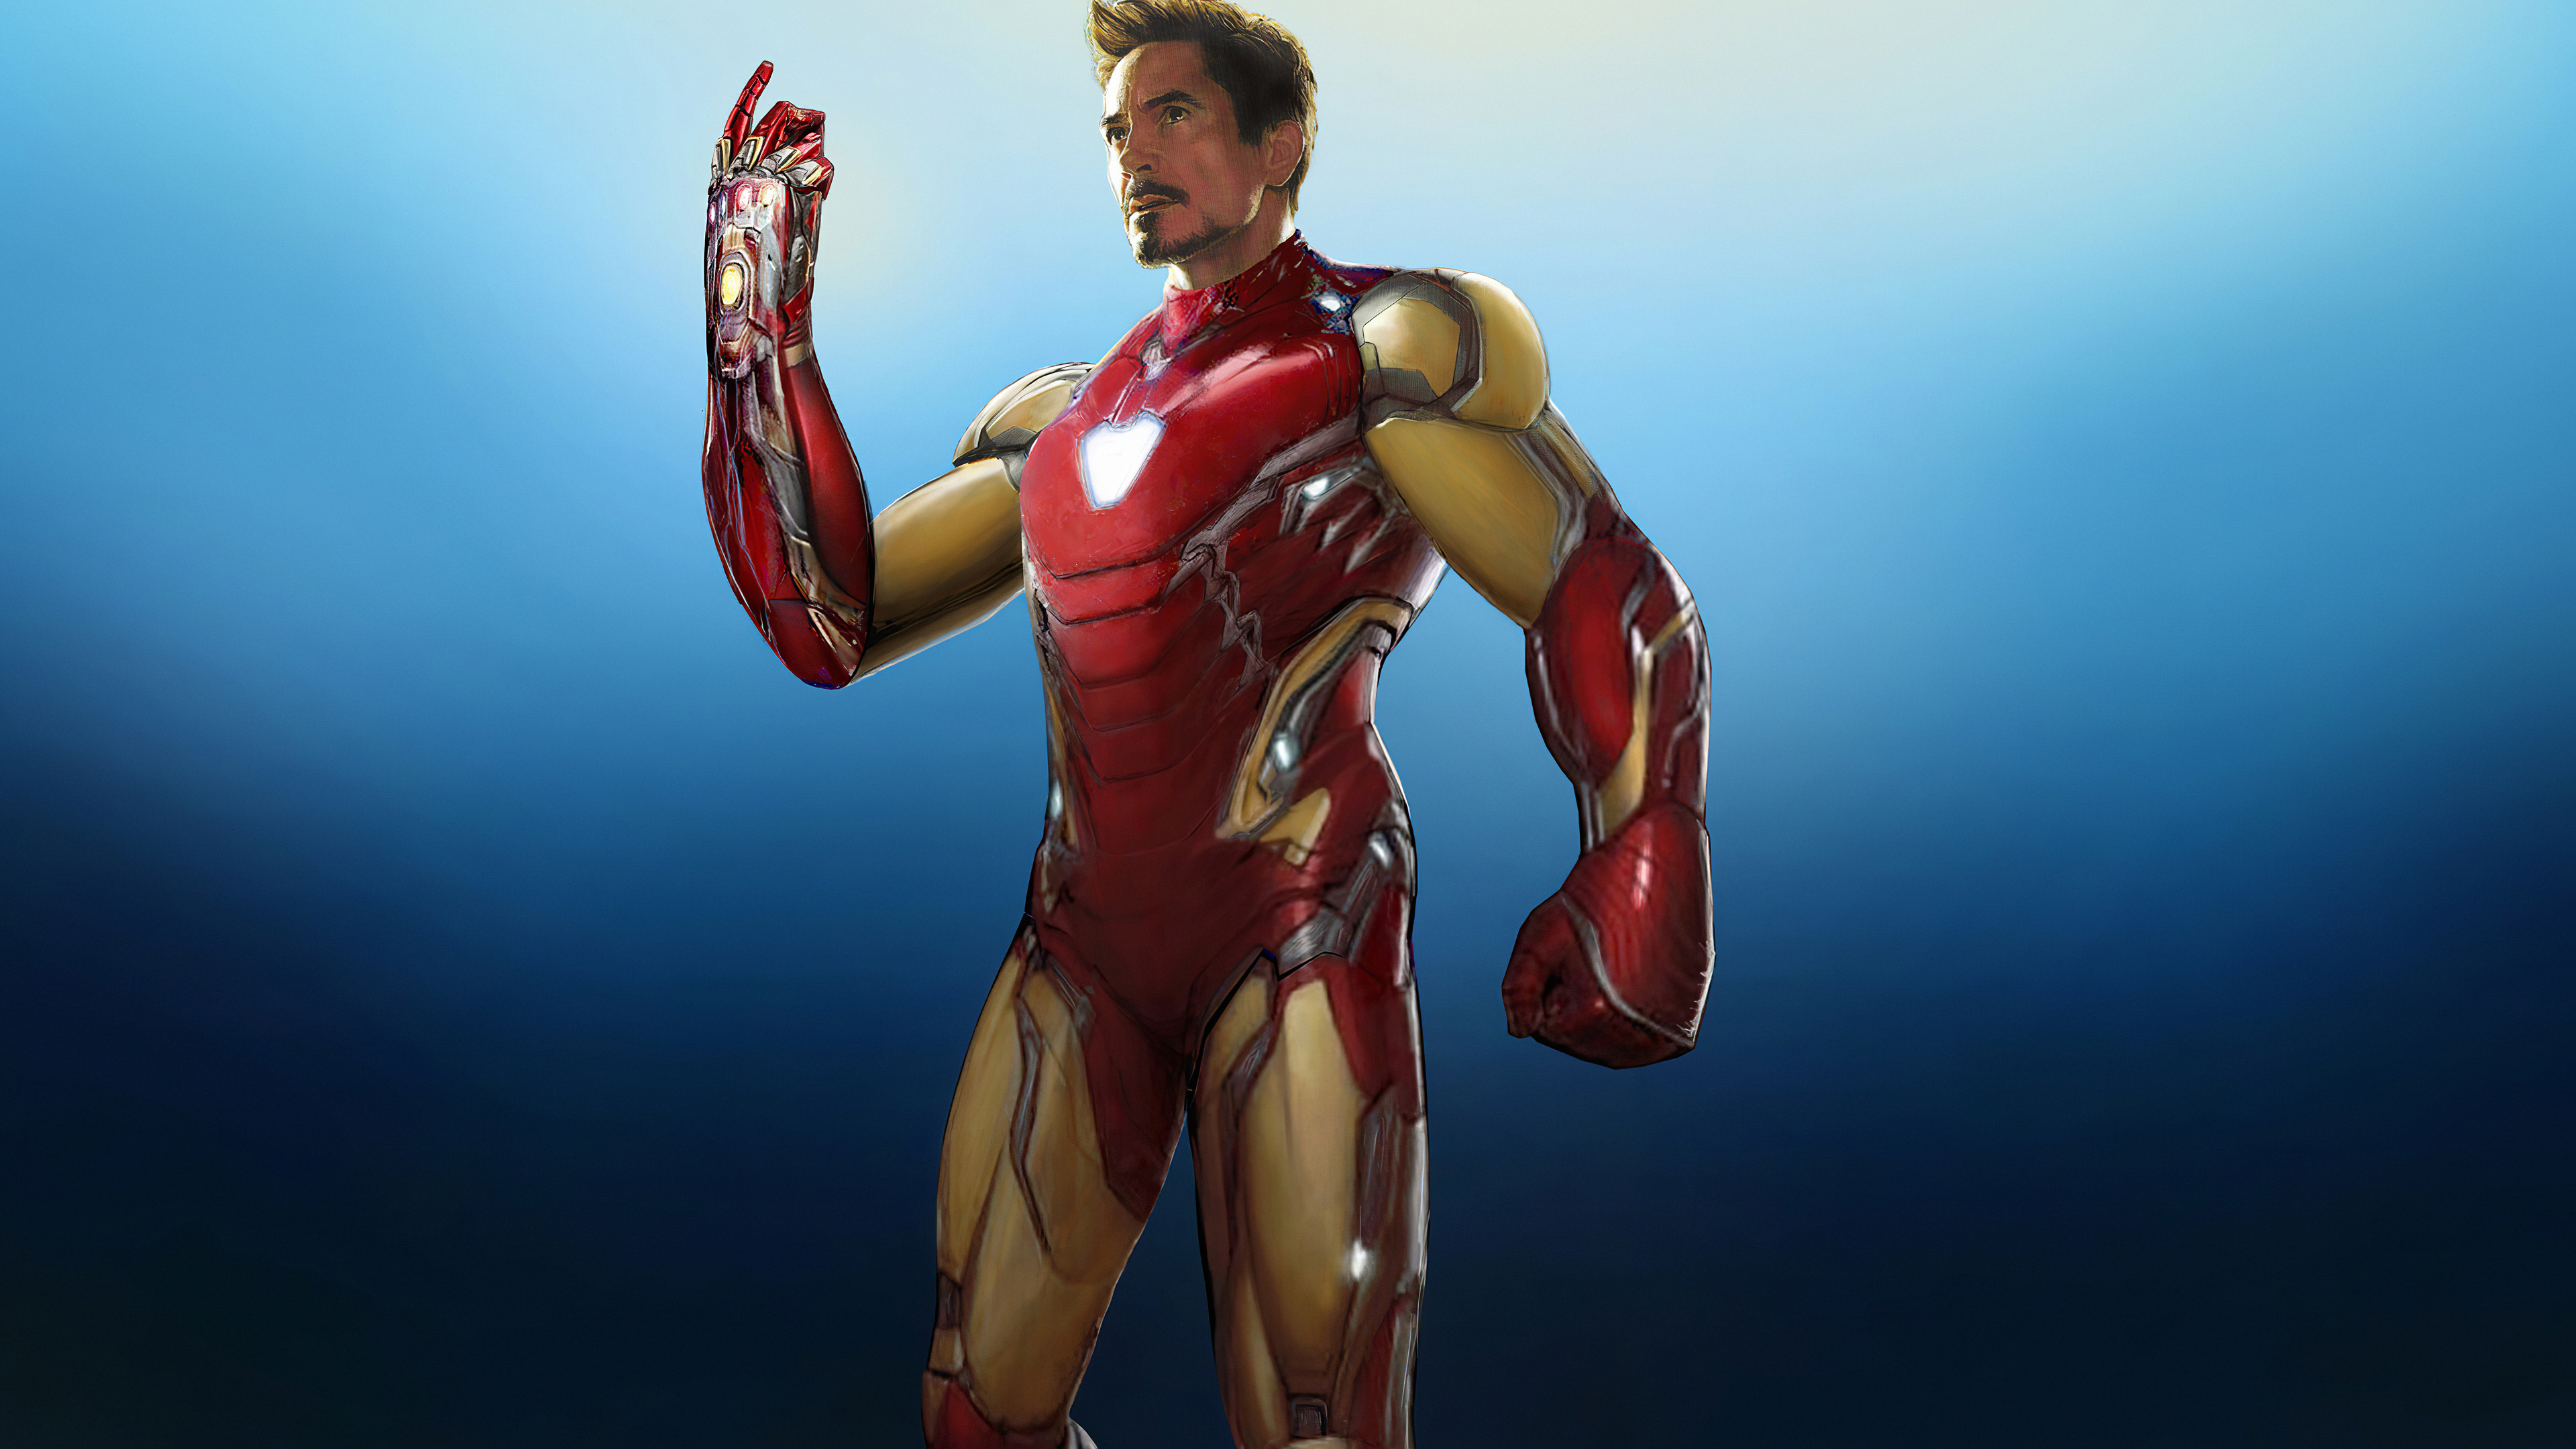 iron-man4k-2020-artwork-vz.jpg